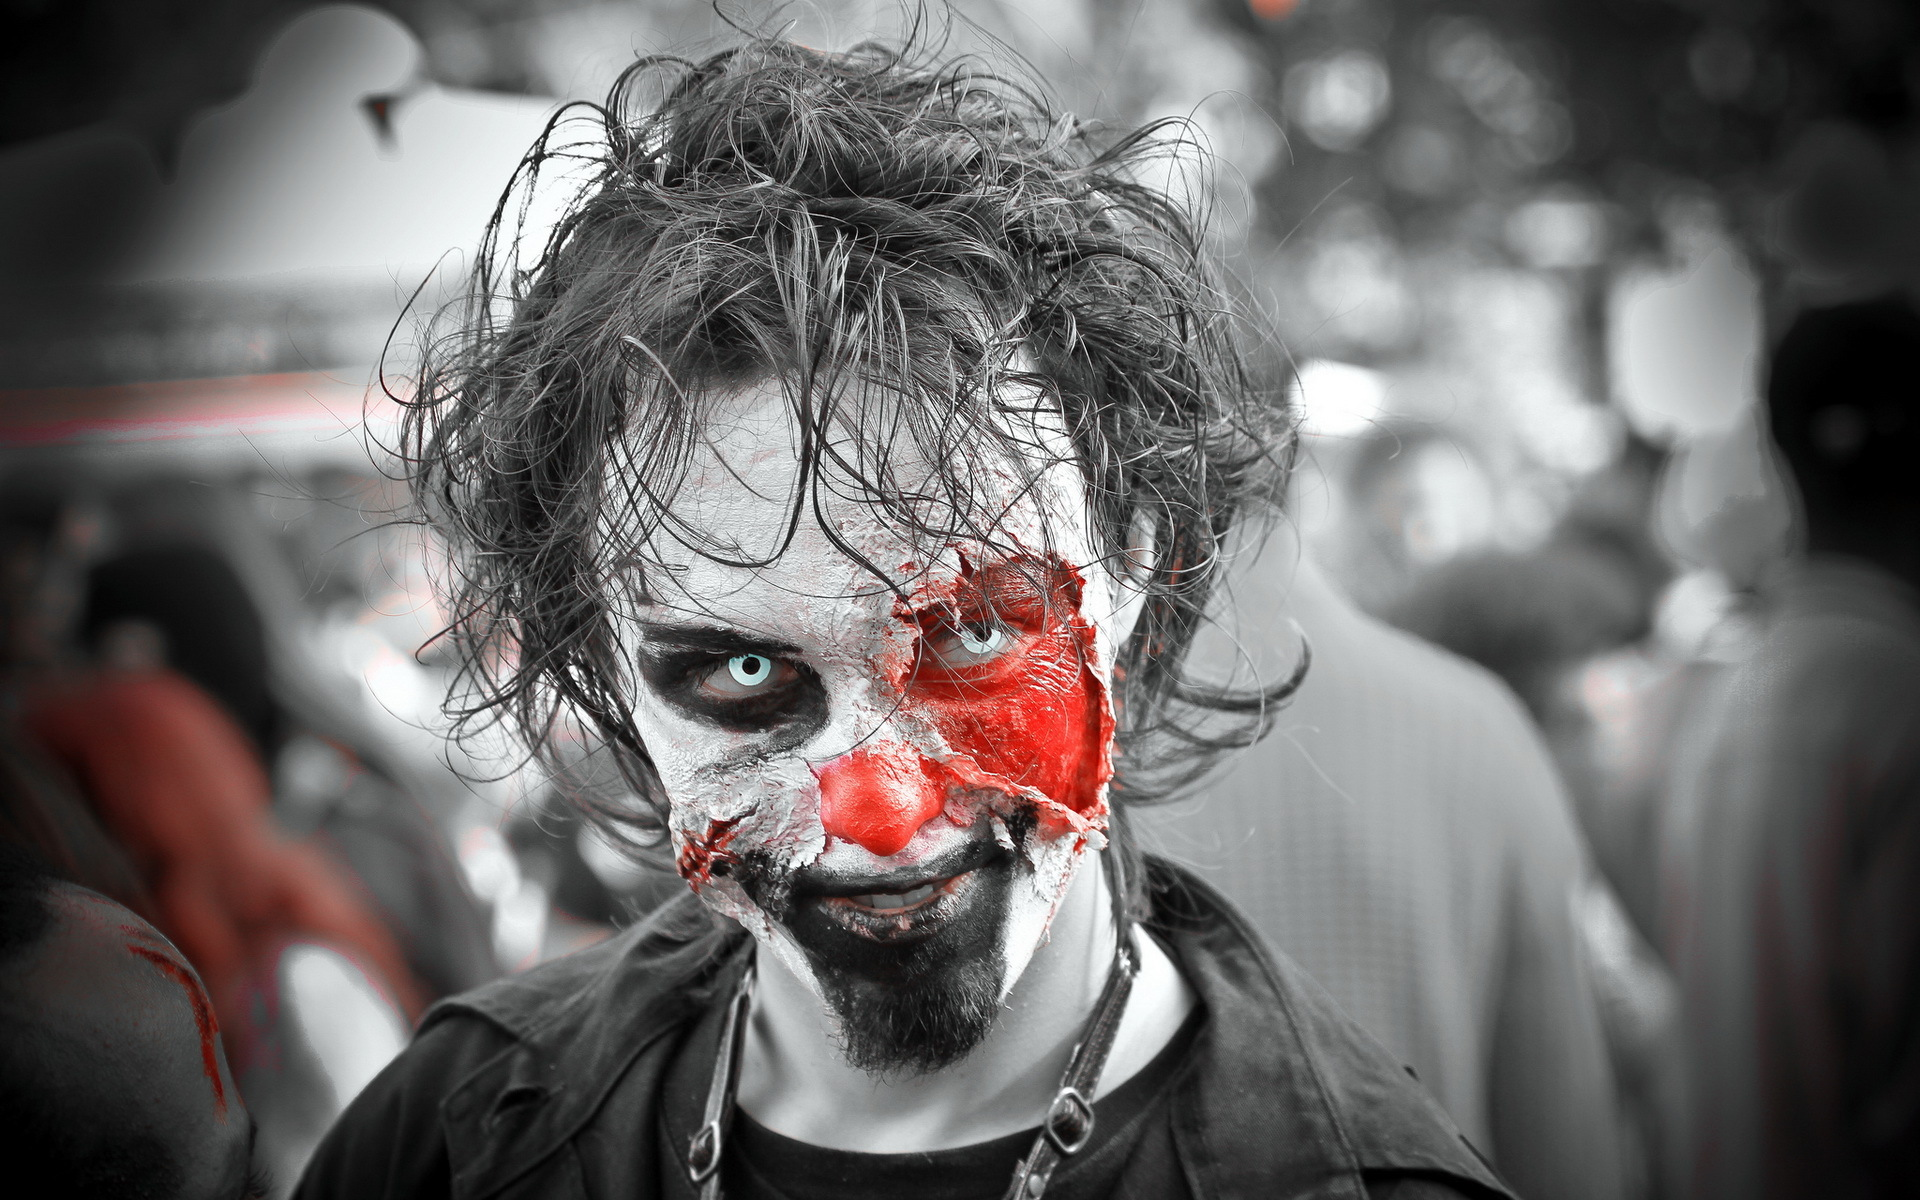 Hd wallpaper zombie - Dark Zombie Horror Creepy Spooky Scary Halloween Wallpaper